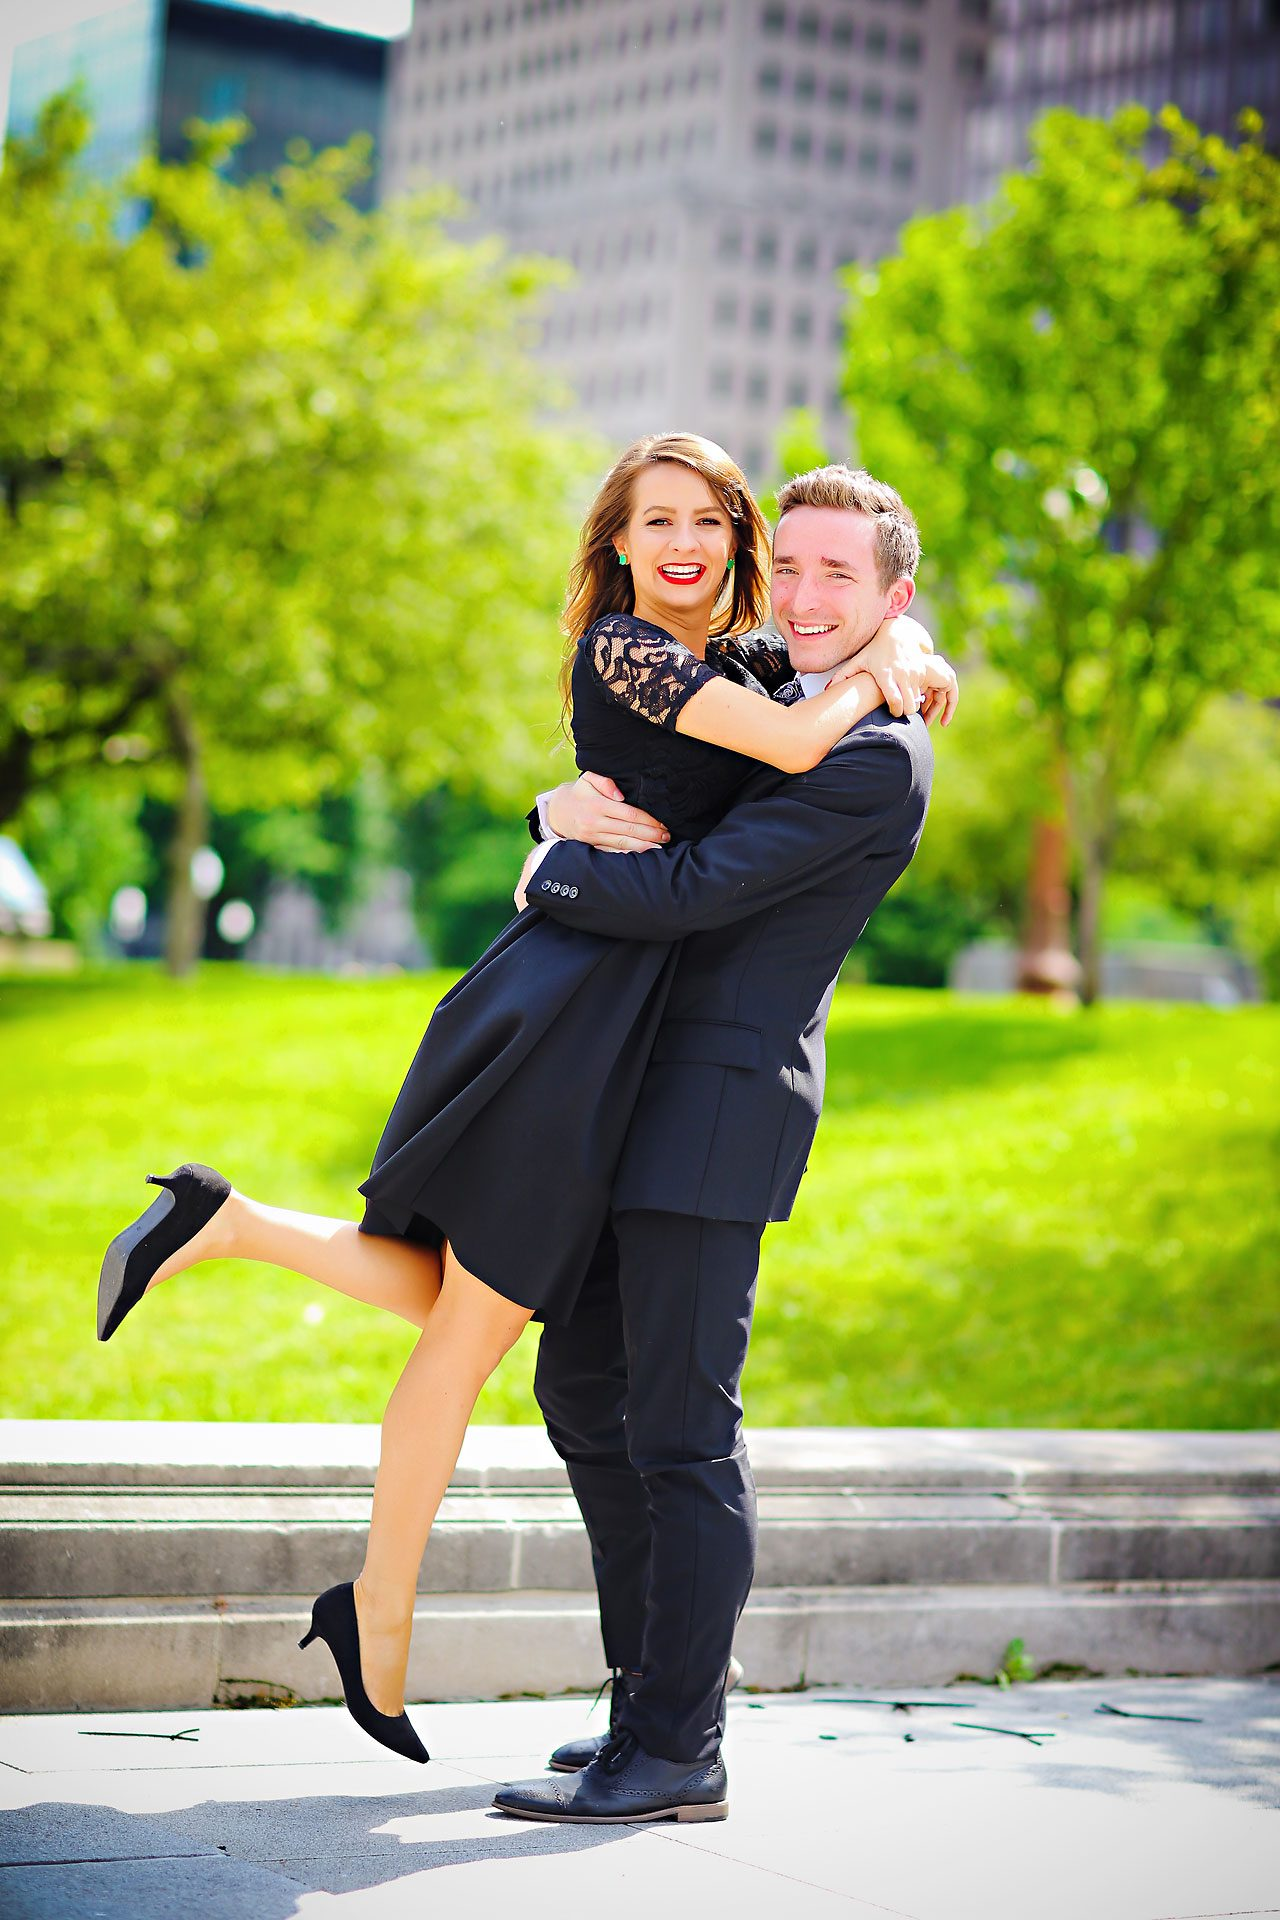 080 Meredith Aaron Indianapolis Engagement Session